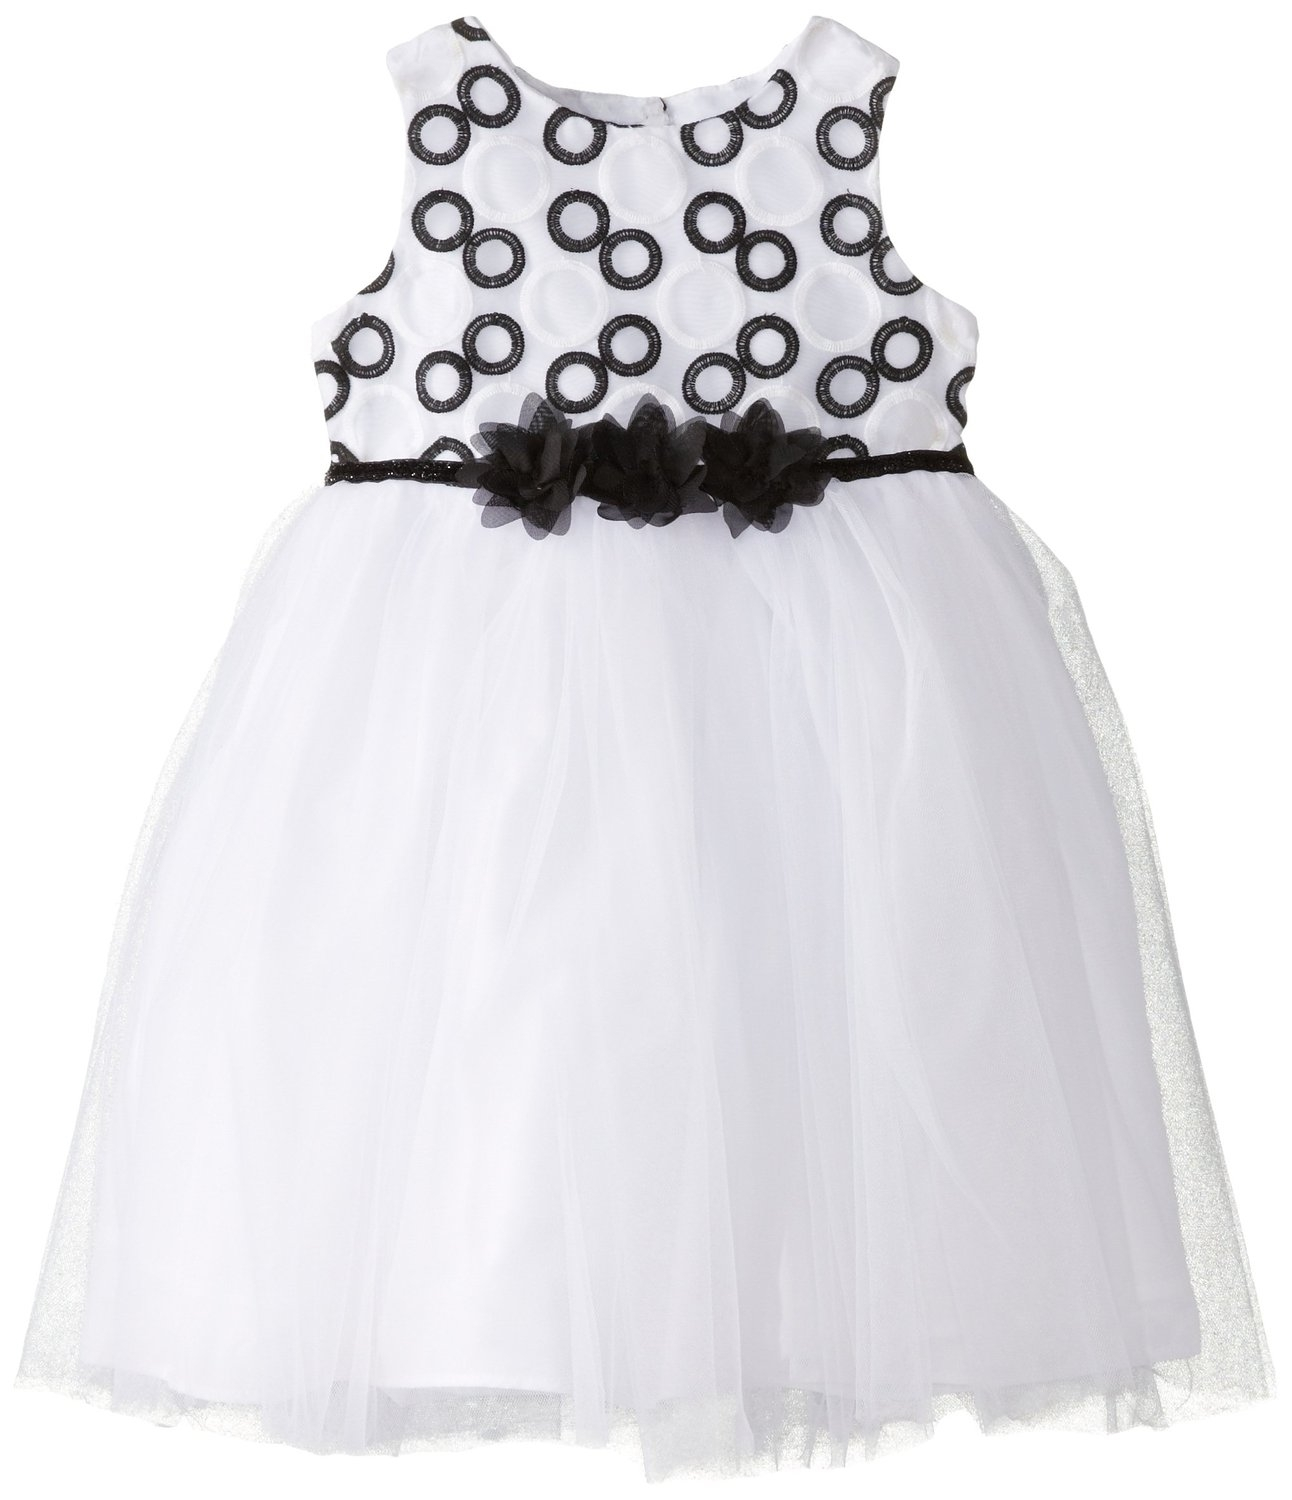 Marmellata Black and White Dress Baby Designer Clothes